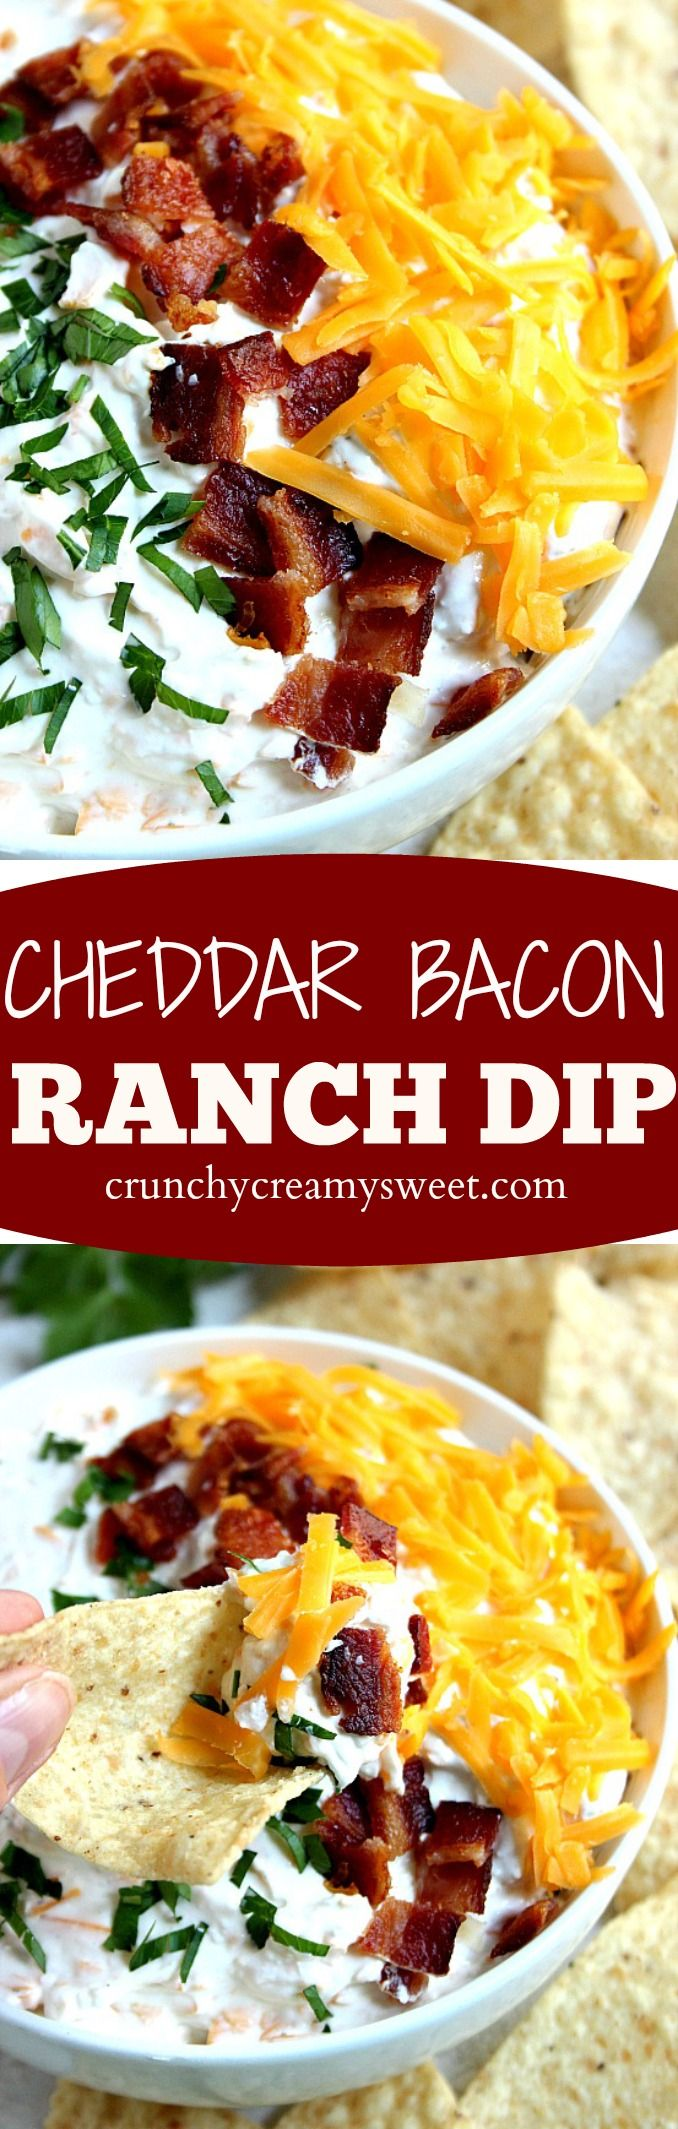 Cheddar Bacon Ranch Dip recipe - you only need 5 ingredients to mix this dip up! It's so good and perfect for a game day or a party! Sponsored by Hidden Valley. #rancheverything #hiddenvalley #ad